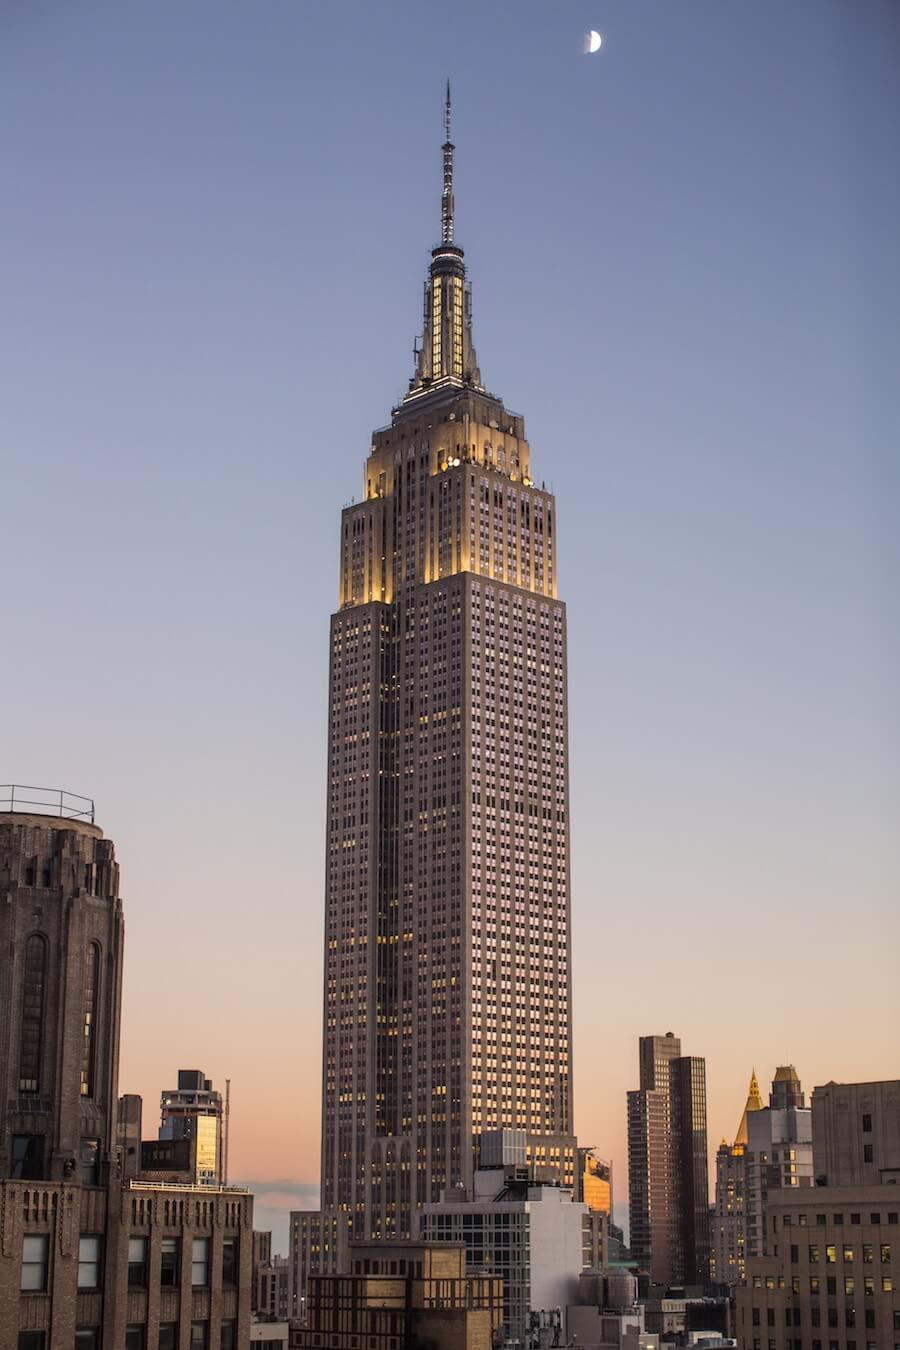 ben-dumond-empire-state-building-new-york.jpg